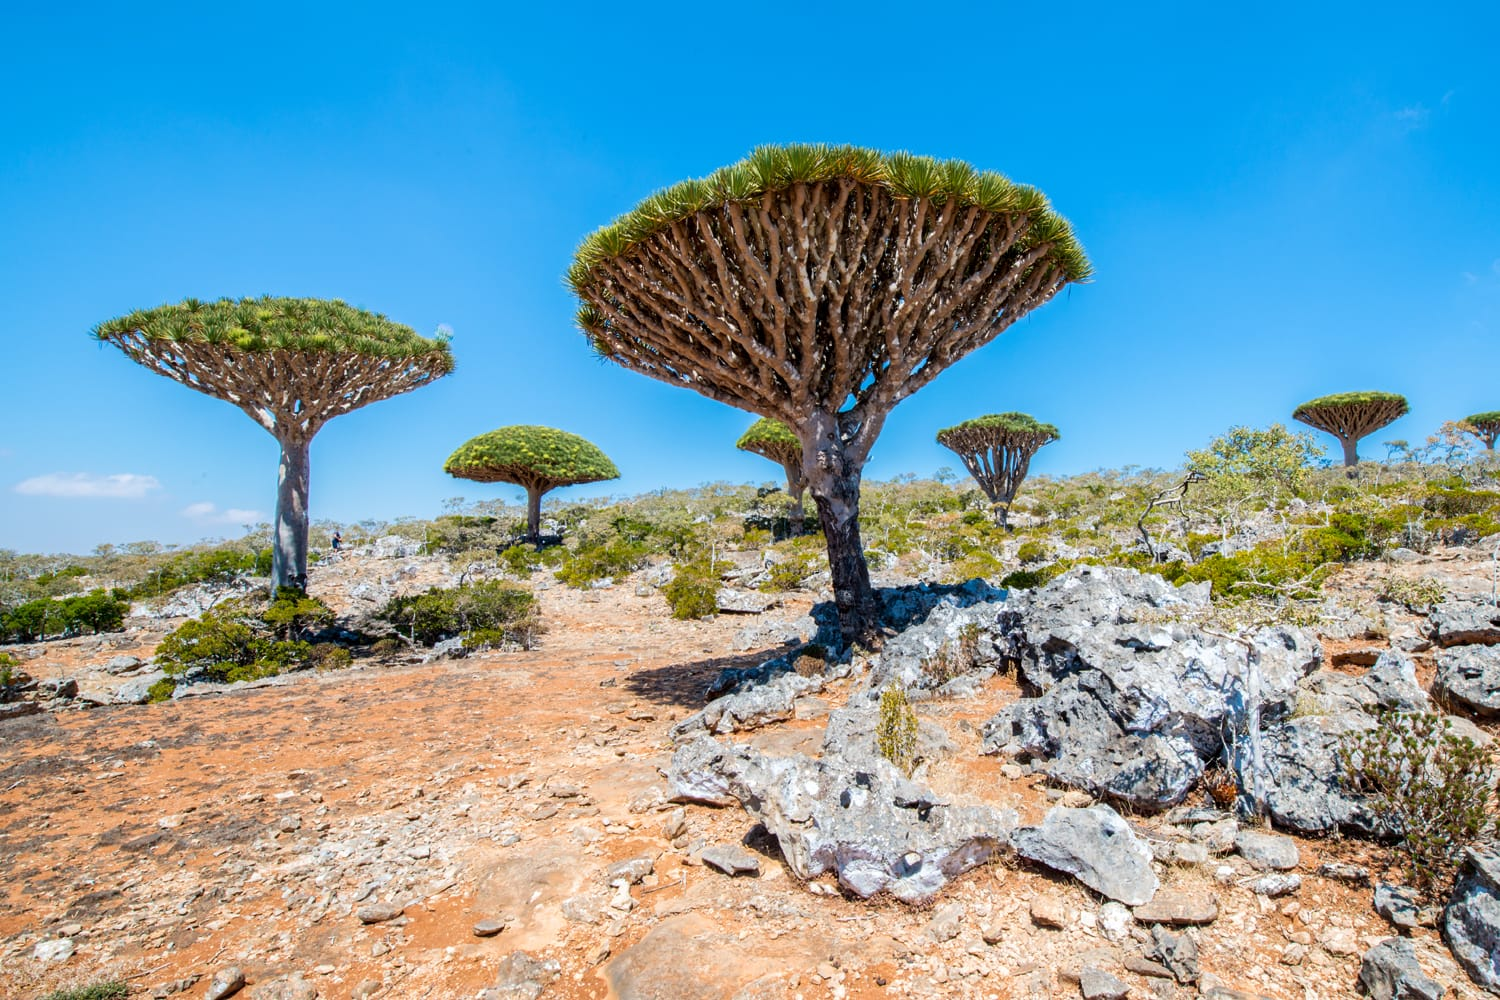 Dragon tree on the Socotra Island, Yemen